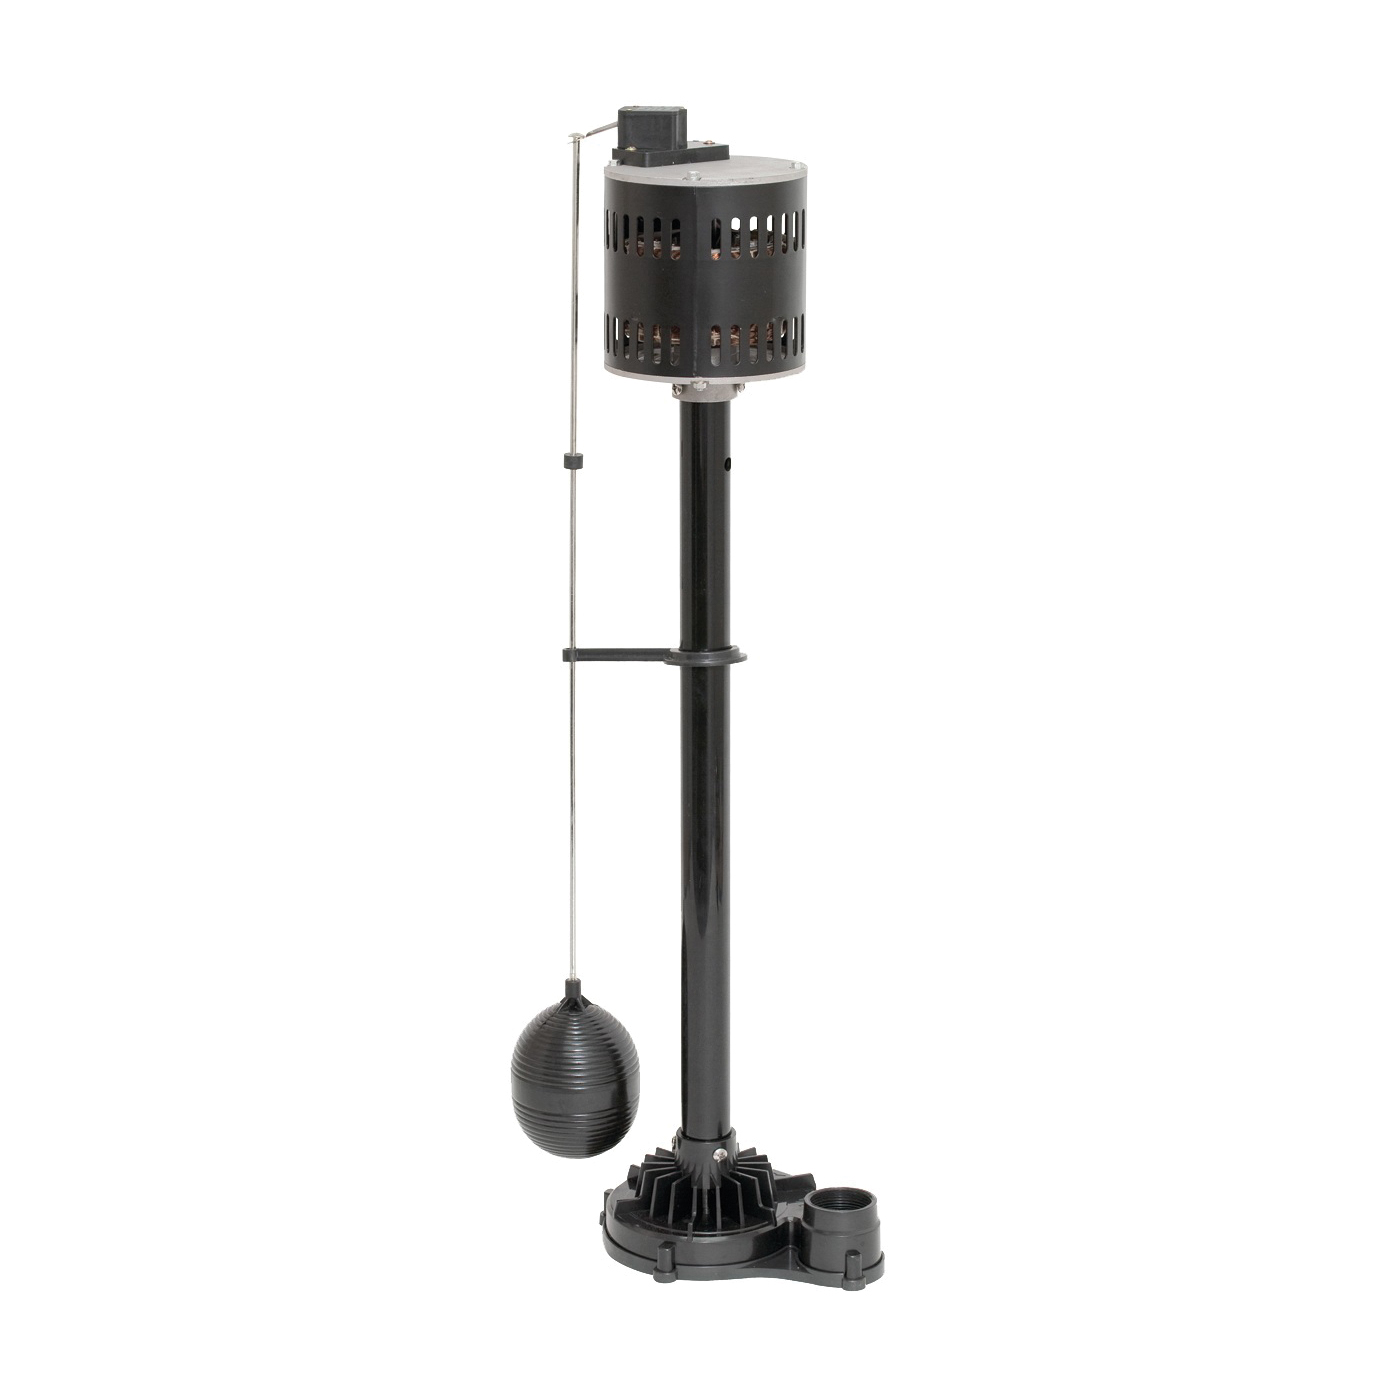 Picture of SUPERIOR PUMP 92553 Sump Pump, 1-Phase, 3.06 A, 120 V, 0.5 hp, 1-1/2 in Outlet, 60 gpm, Thermoplastic